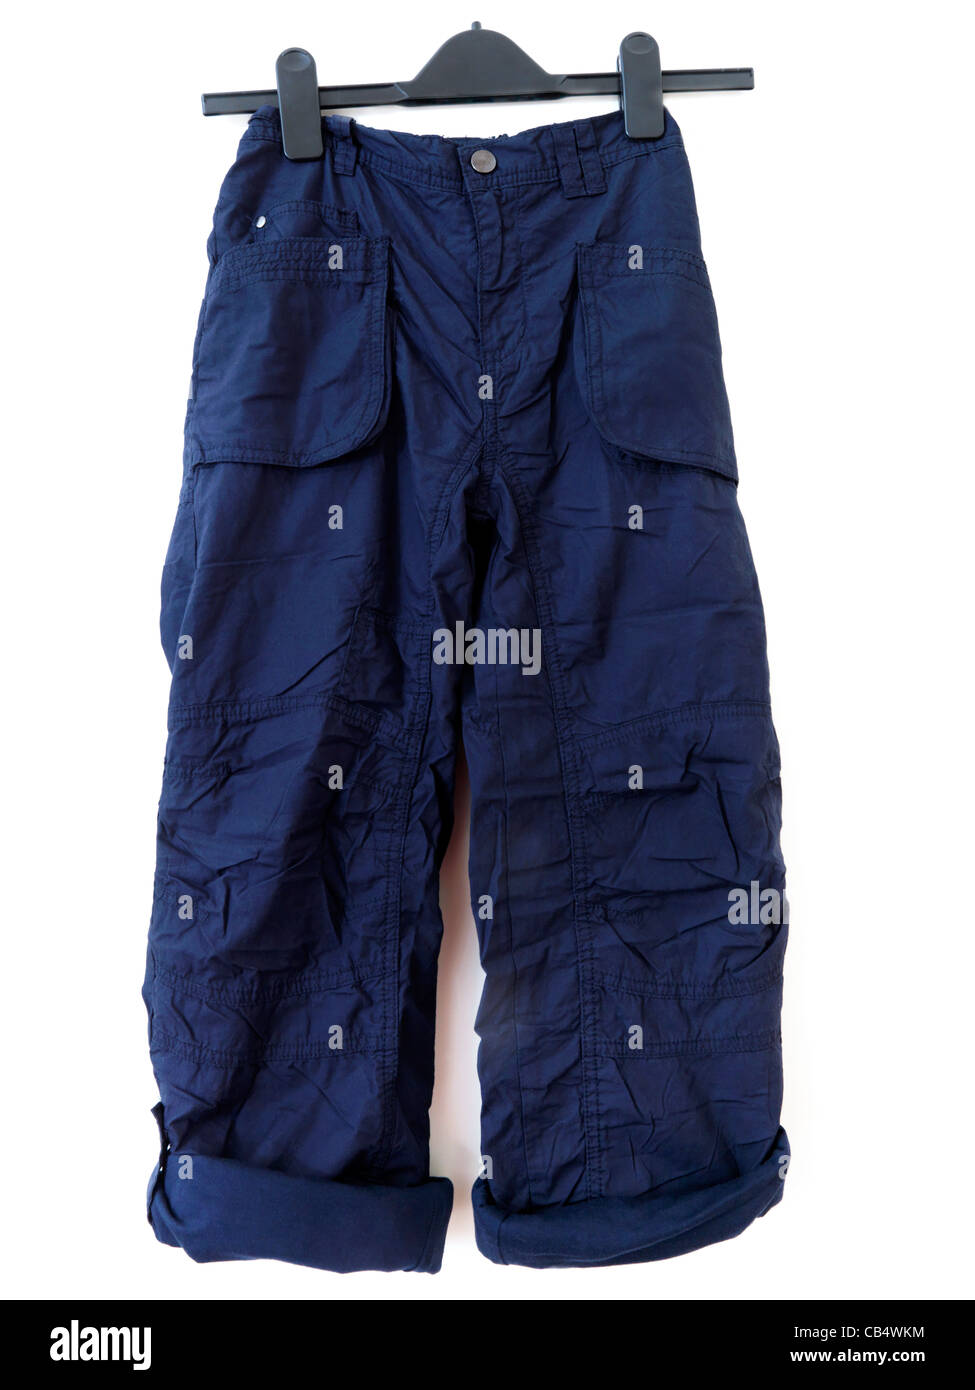 Pair Of Boy's Cargo Trousers With Both Legs Buttoned Up - Stock Image